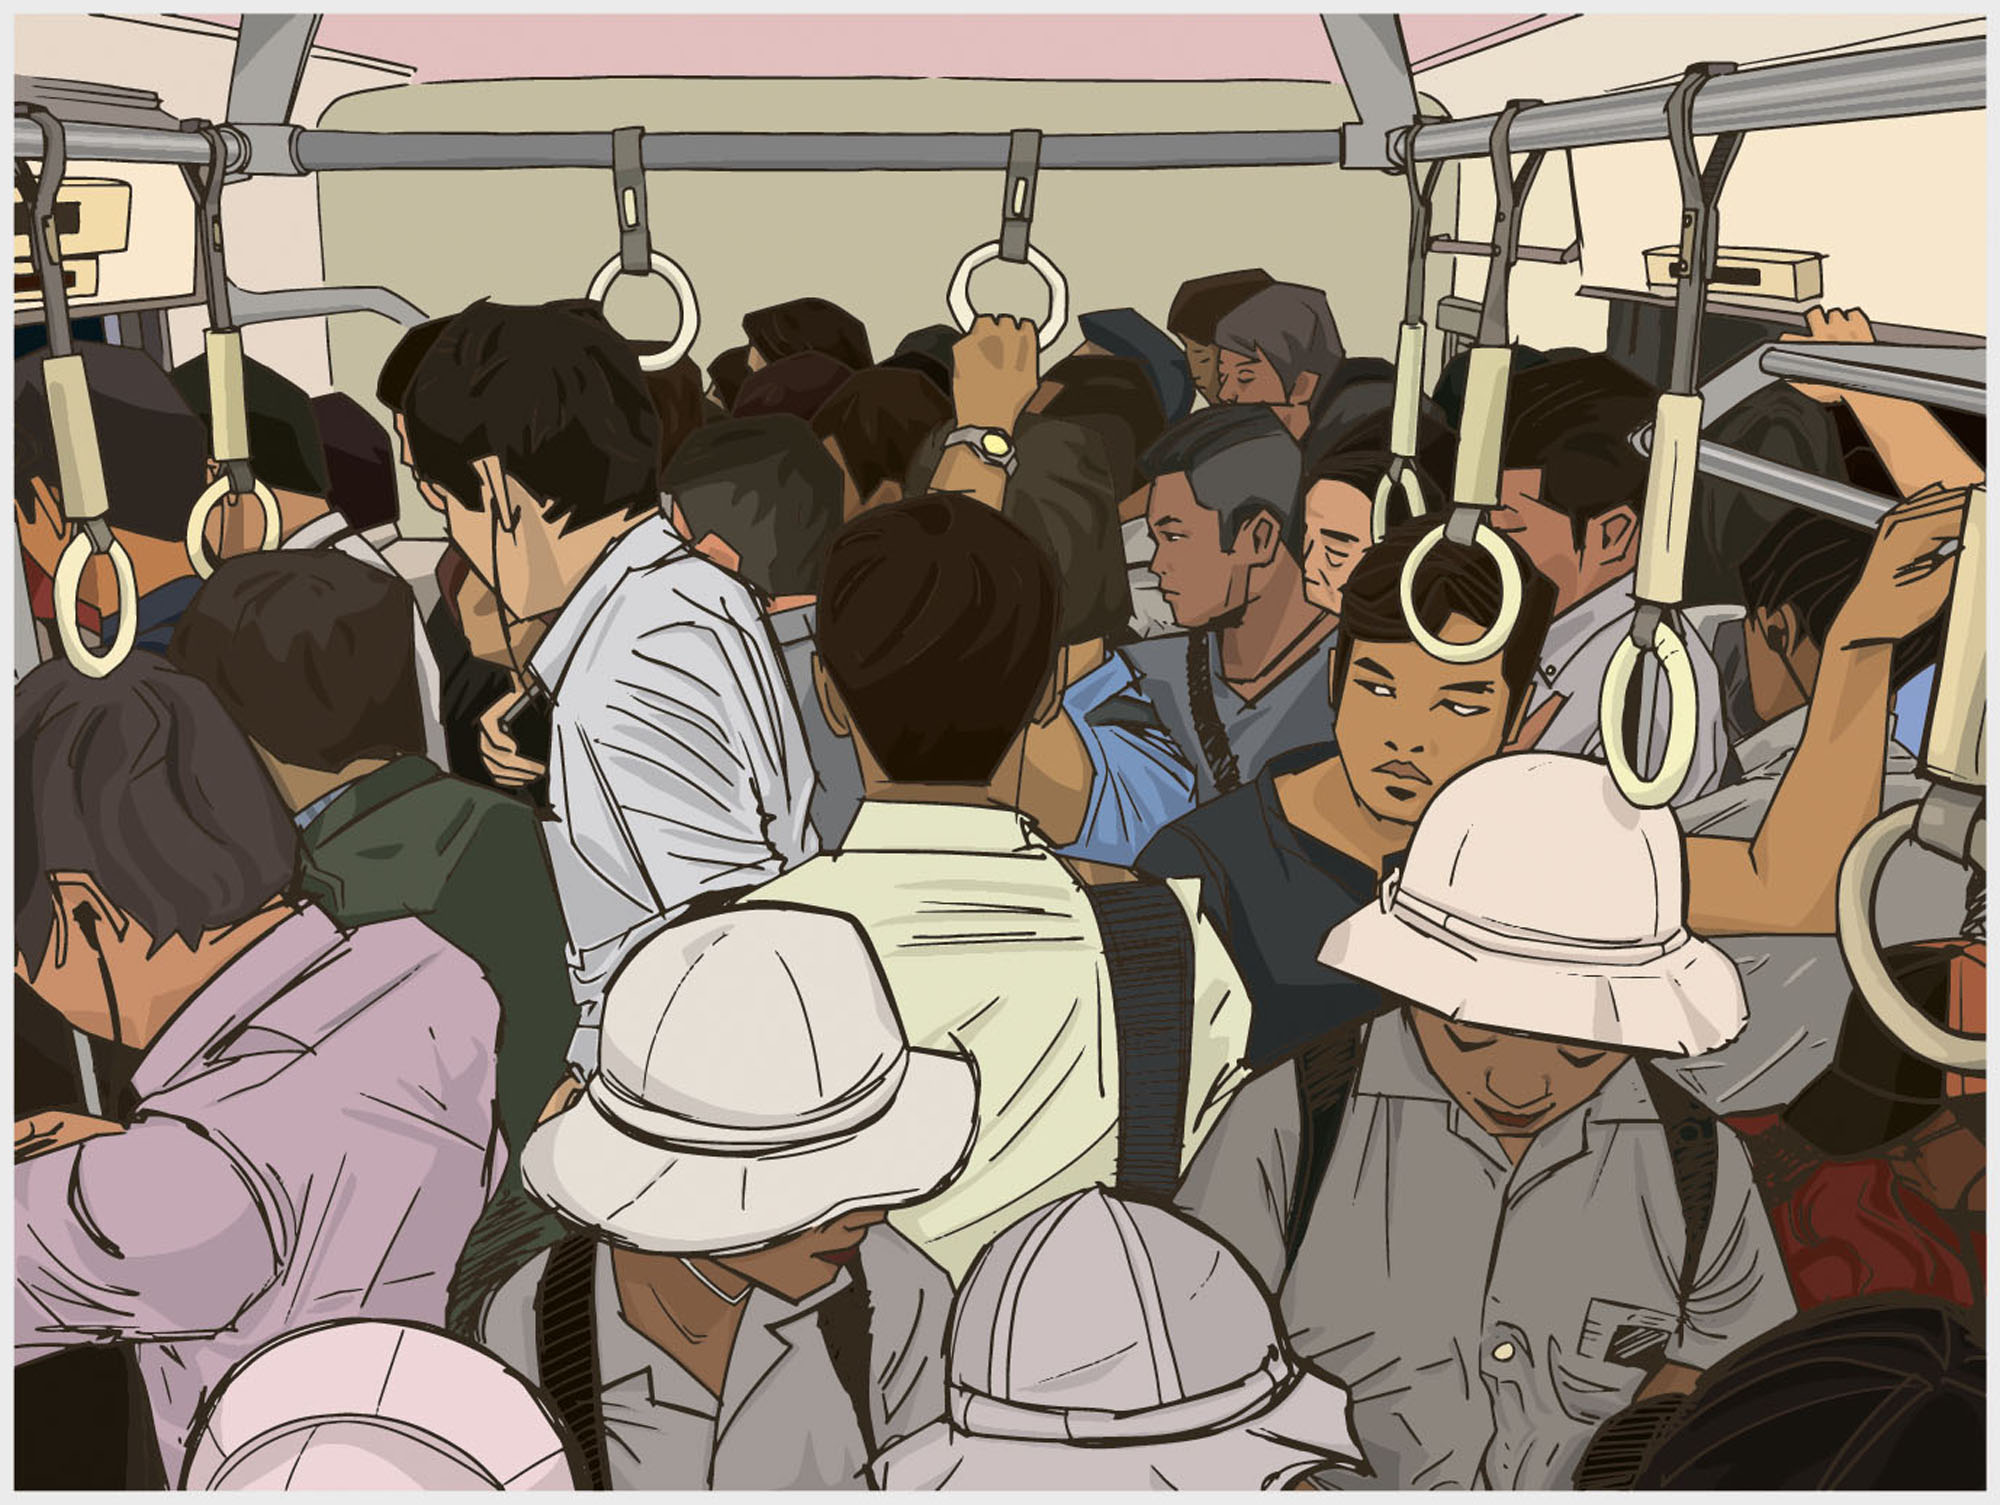 Packed in tight: Trains in Tokyo can get very crowded. Local residents have had to come up with strategies to get through their commutes like leaving earlier than usual or taking a longer, less busy route.   GETTY IMAGES